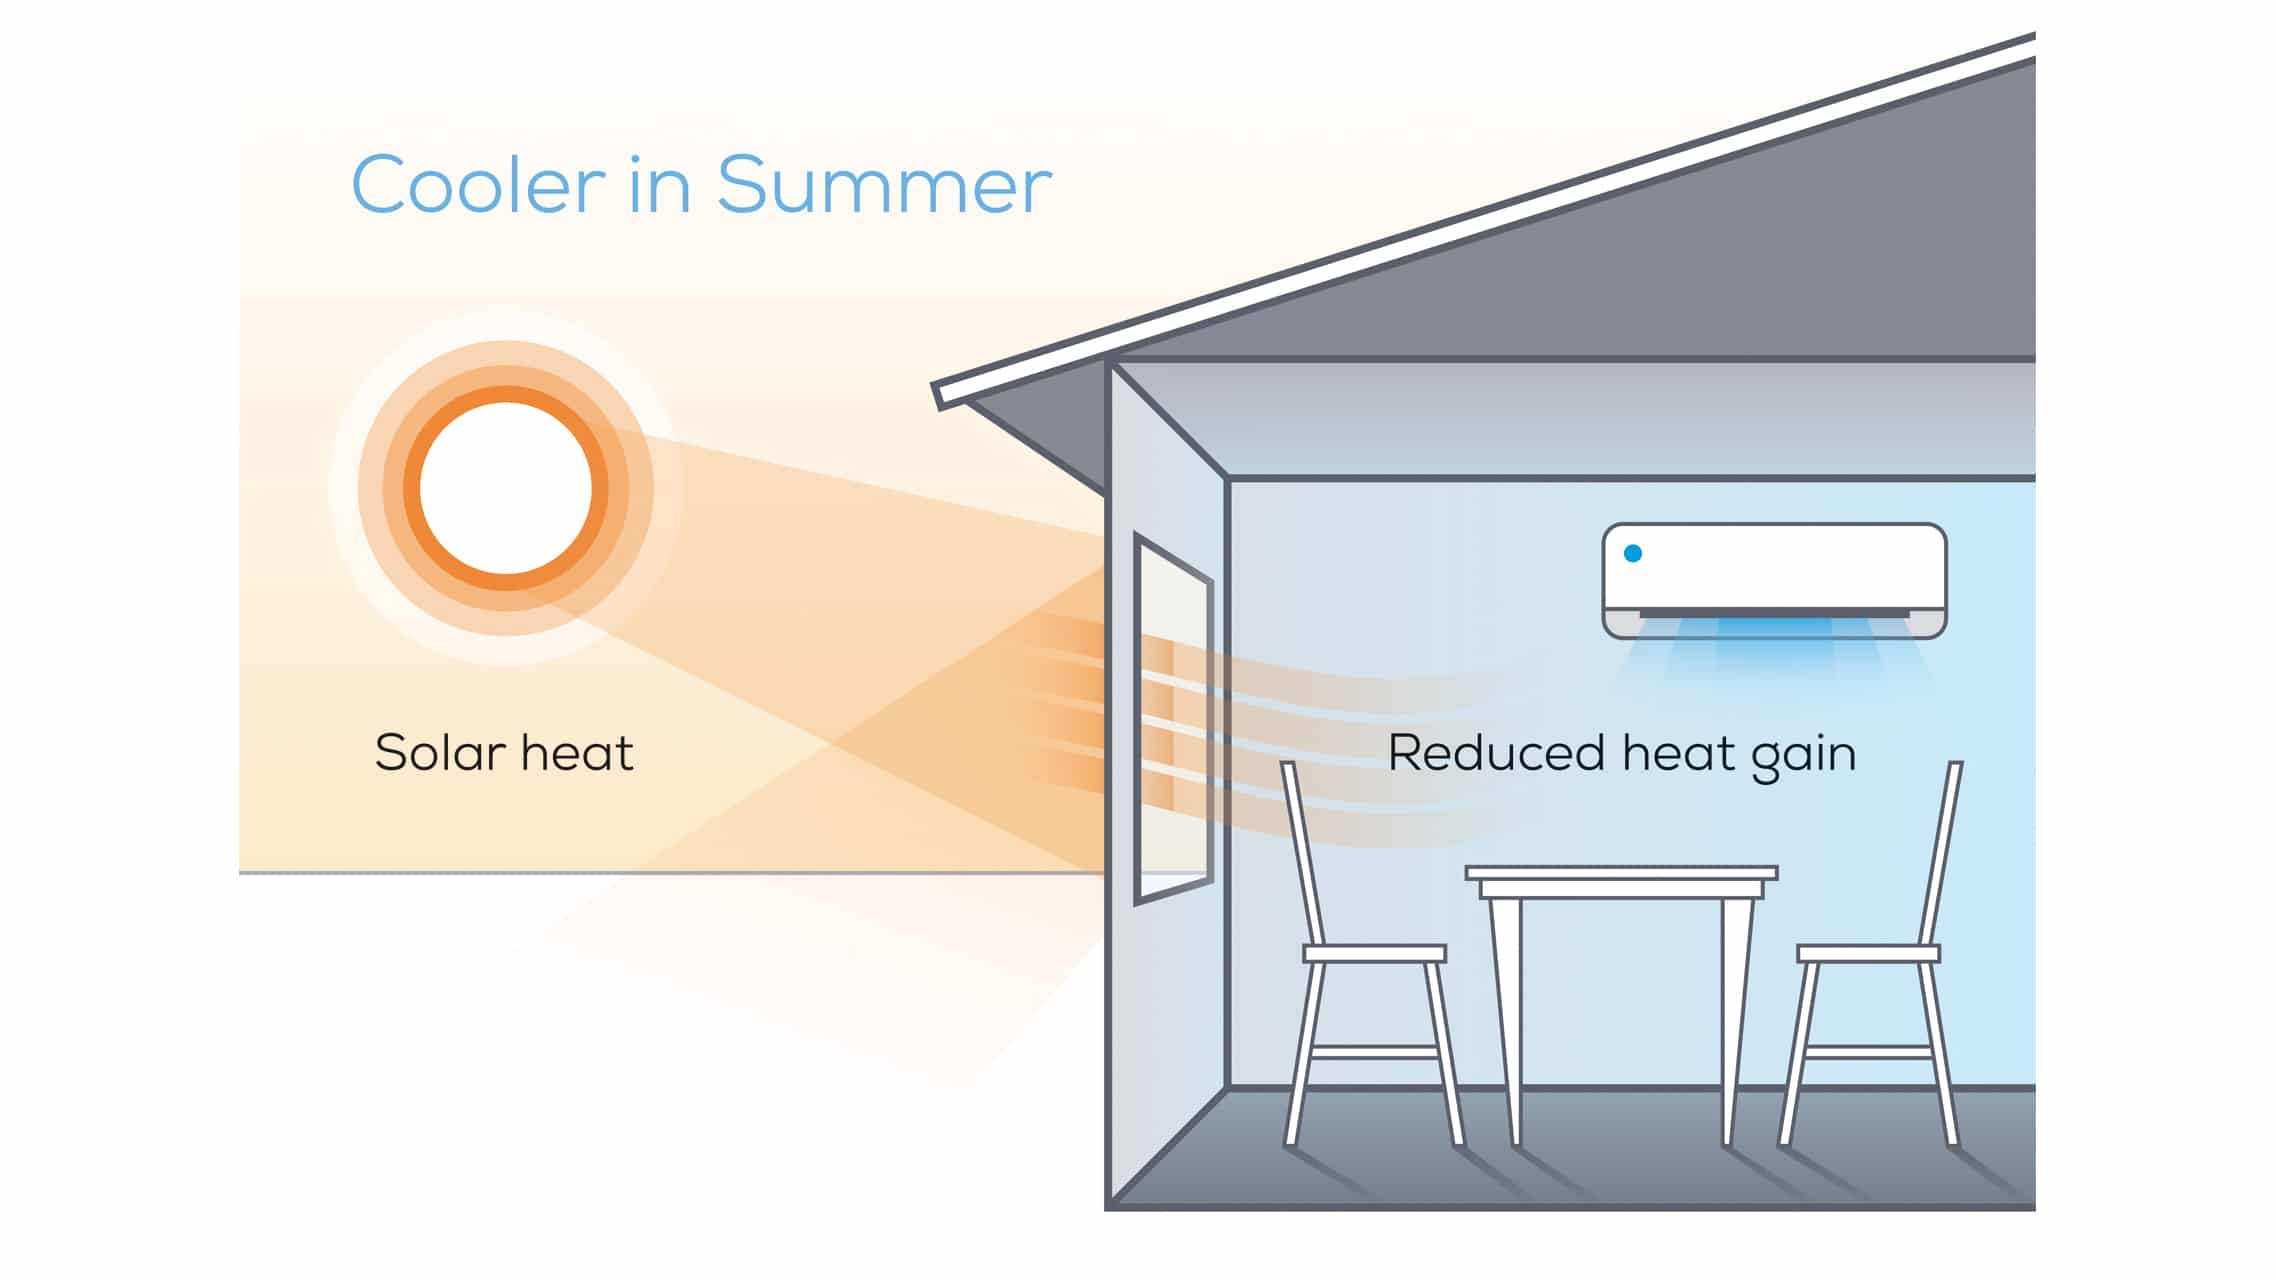 Windows keep home cooler in summer